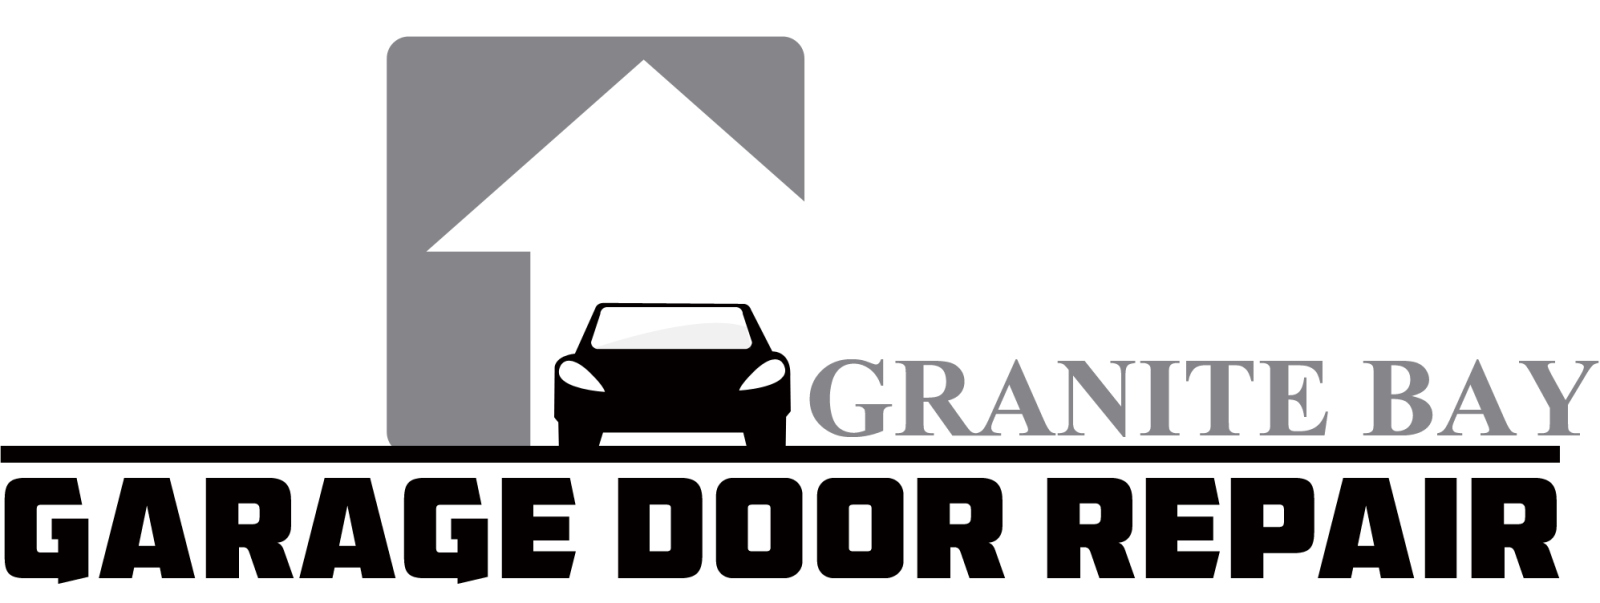 Garage Door Repair Granite Bay ,CA